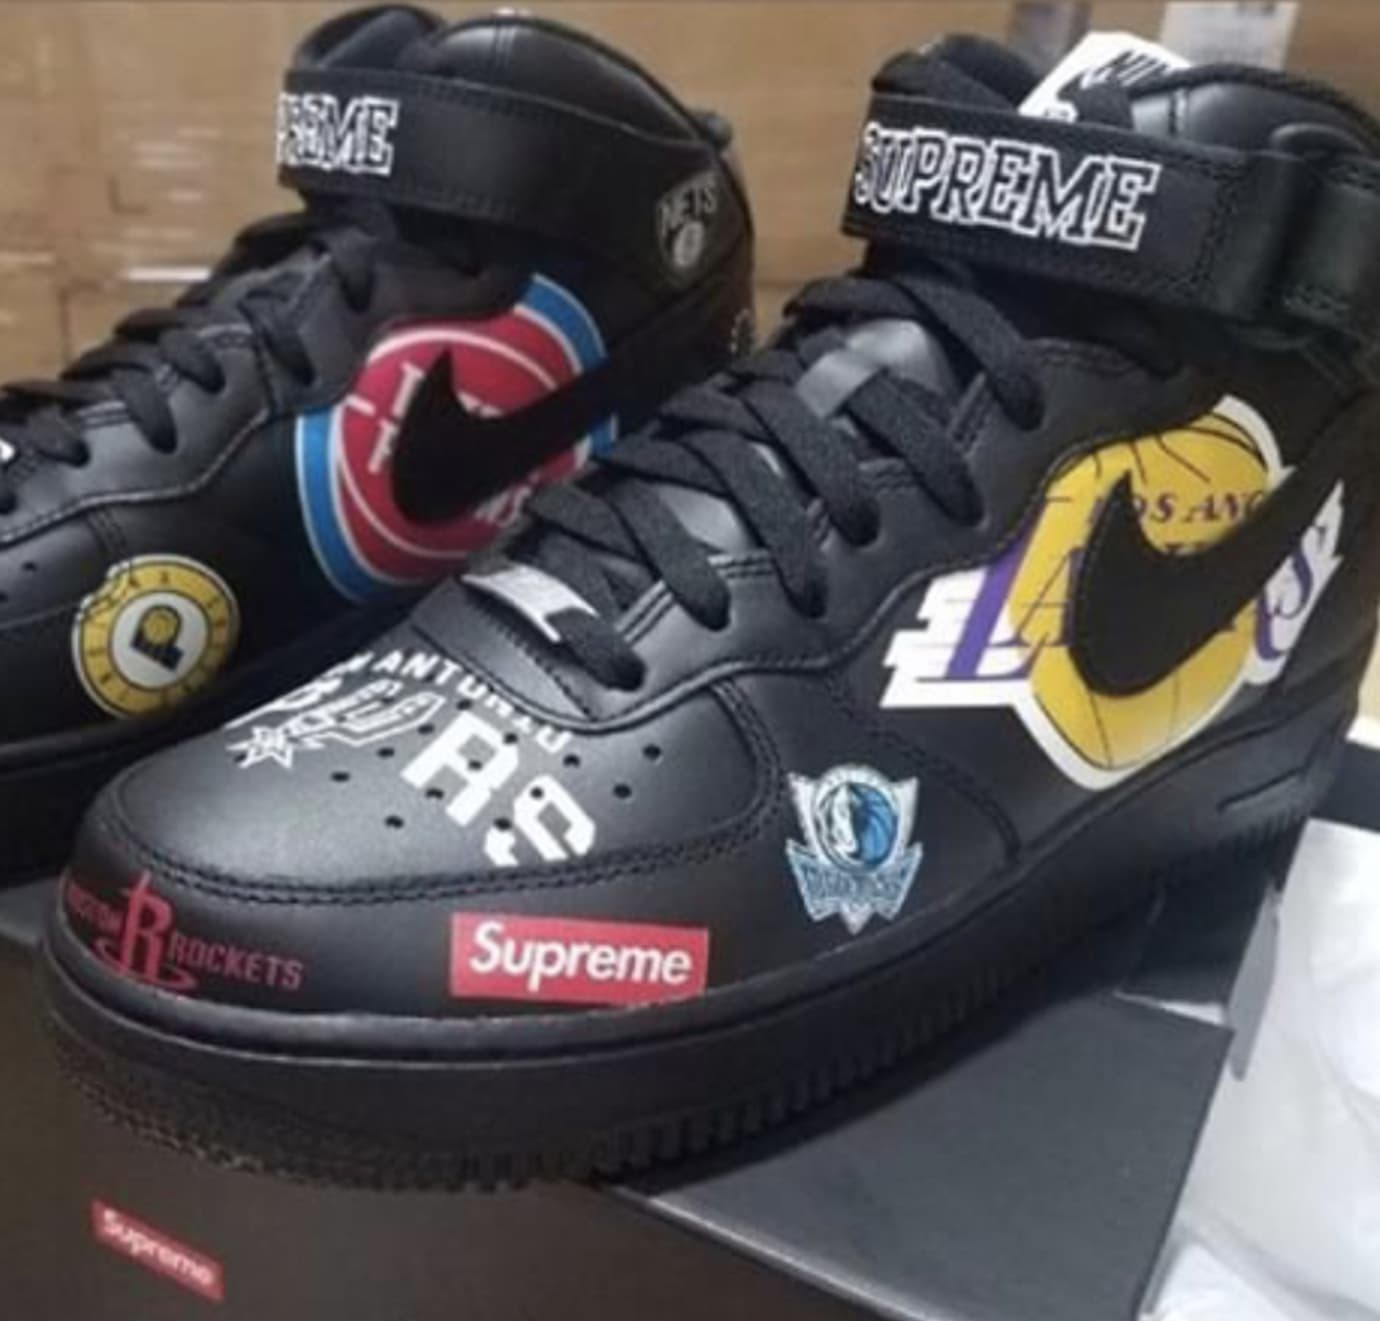 Supreme x Nike Air Force 1 Mid 'Black' AQ8017-001 1